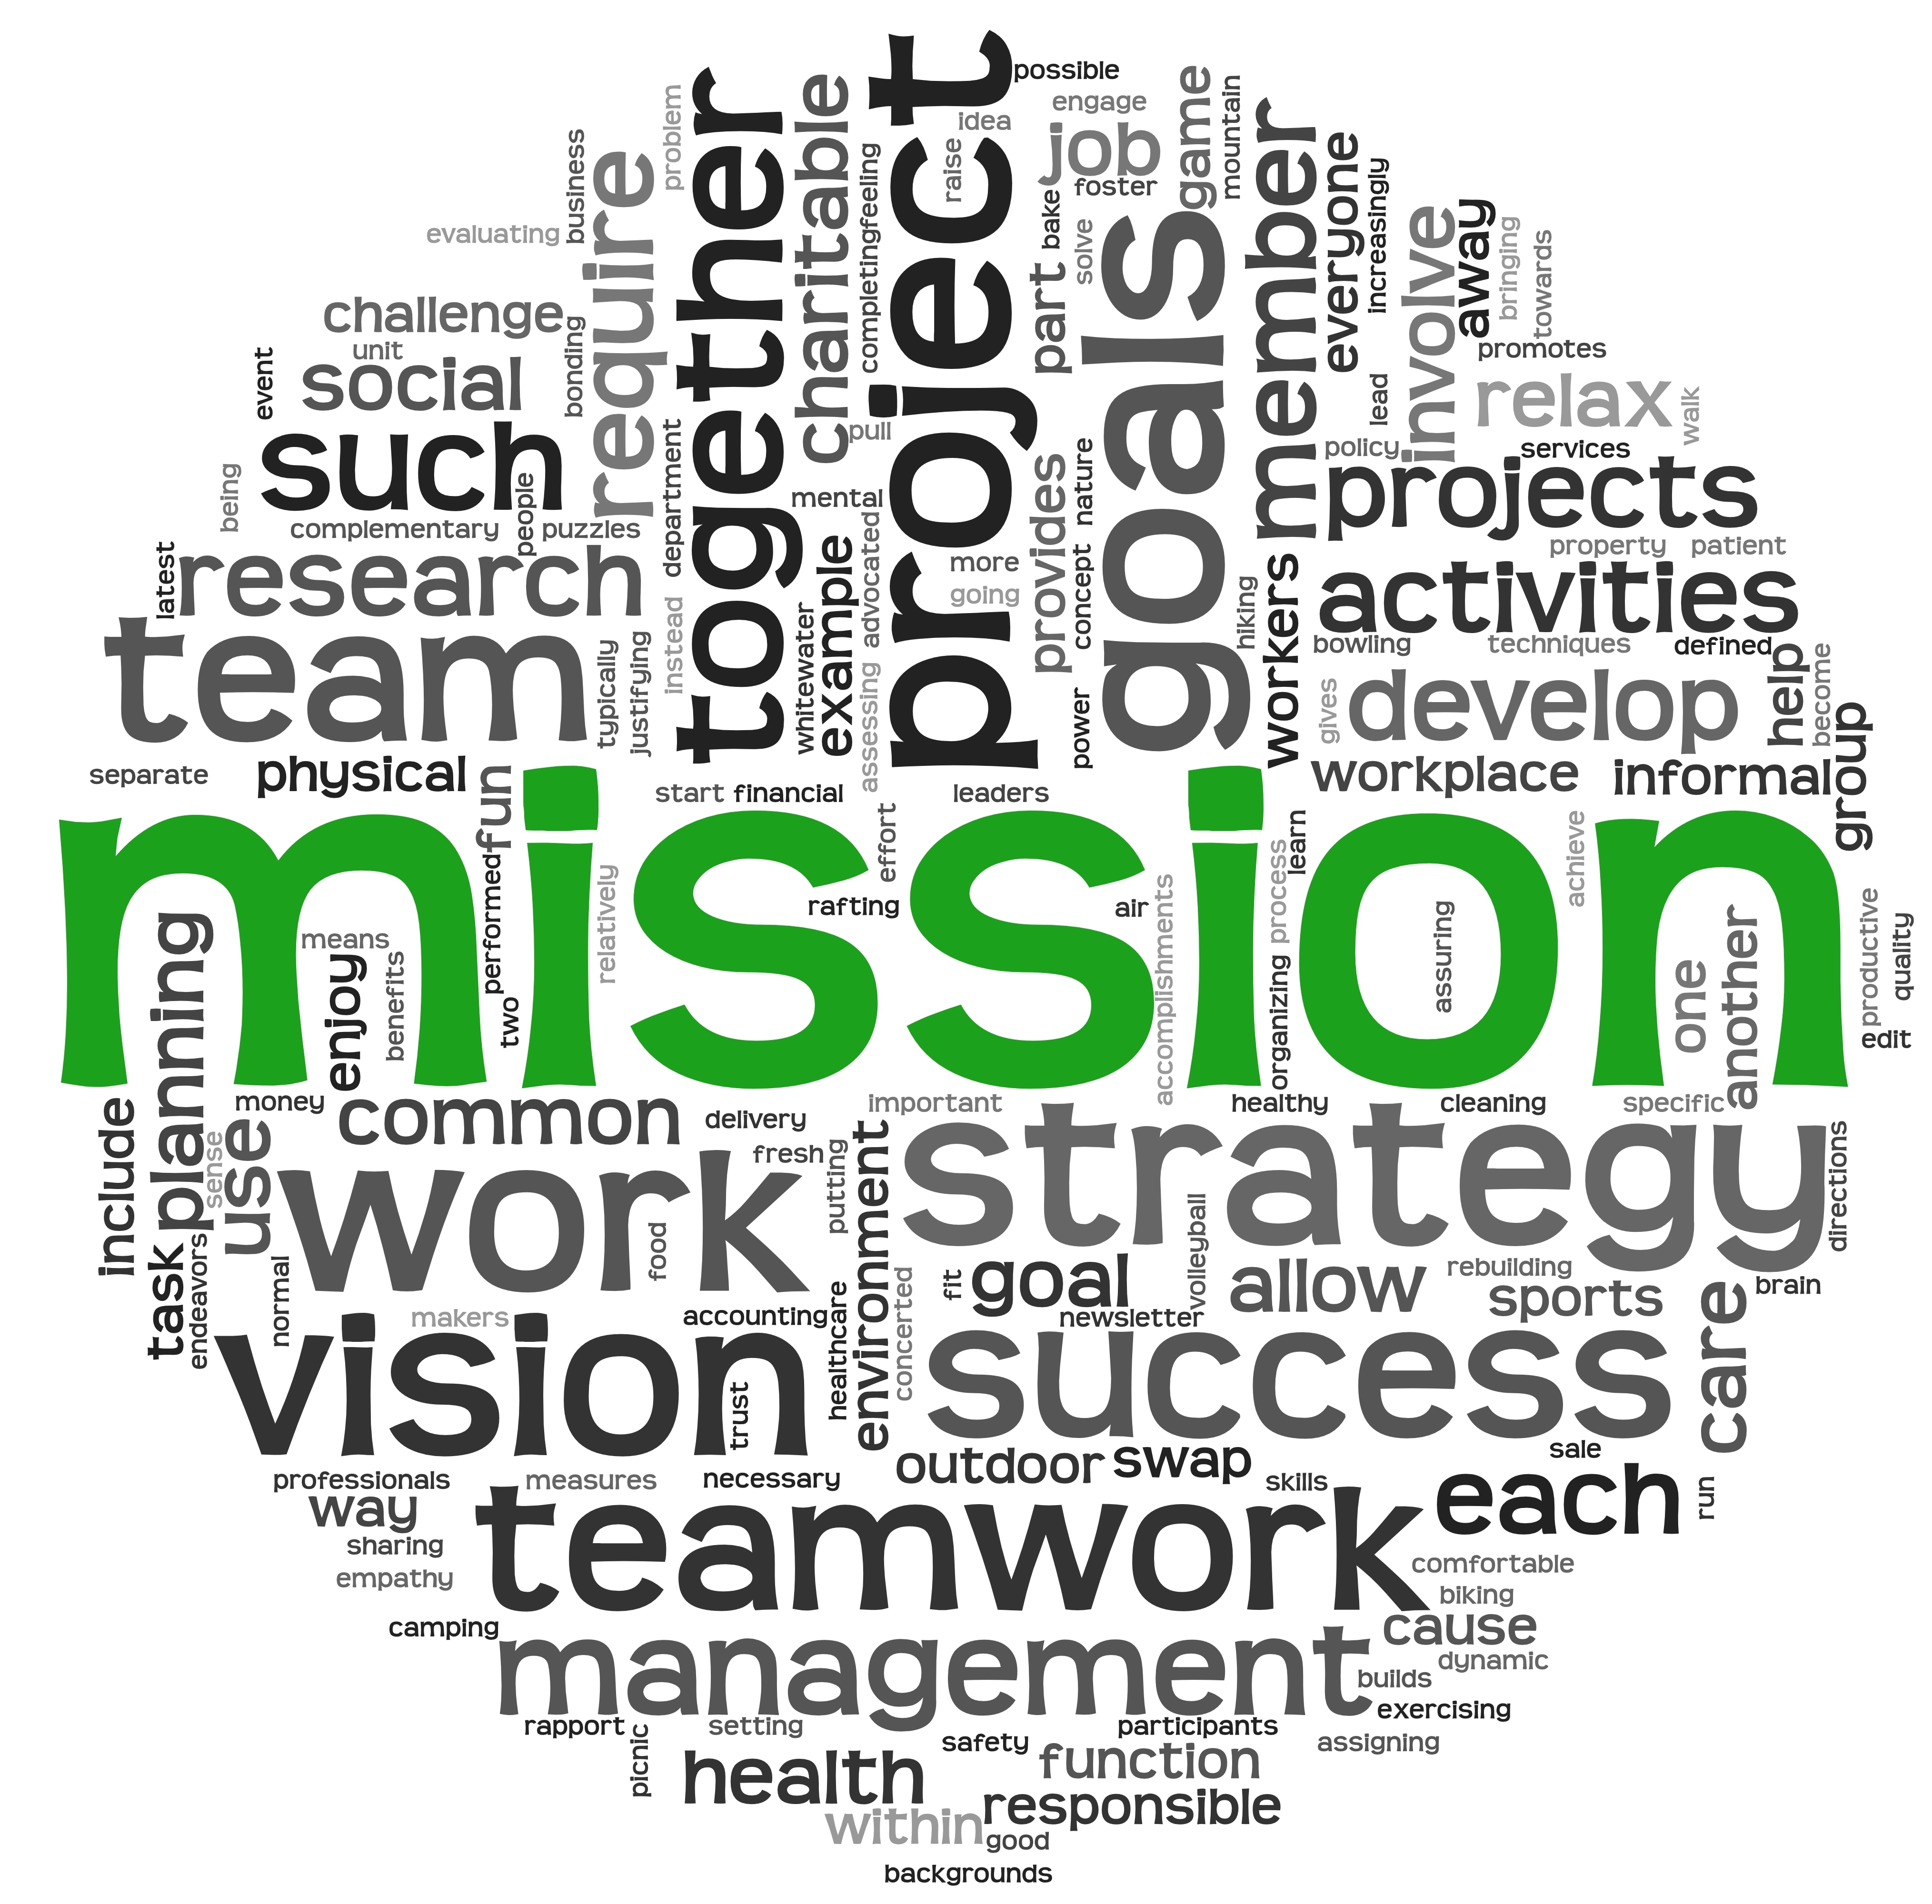 mission statement coyote chronicle